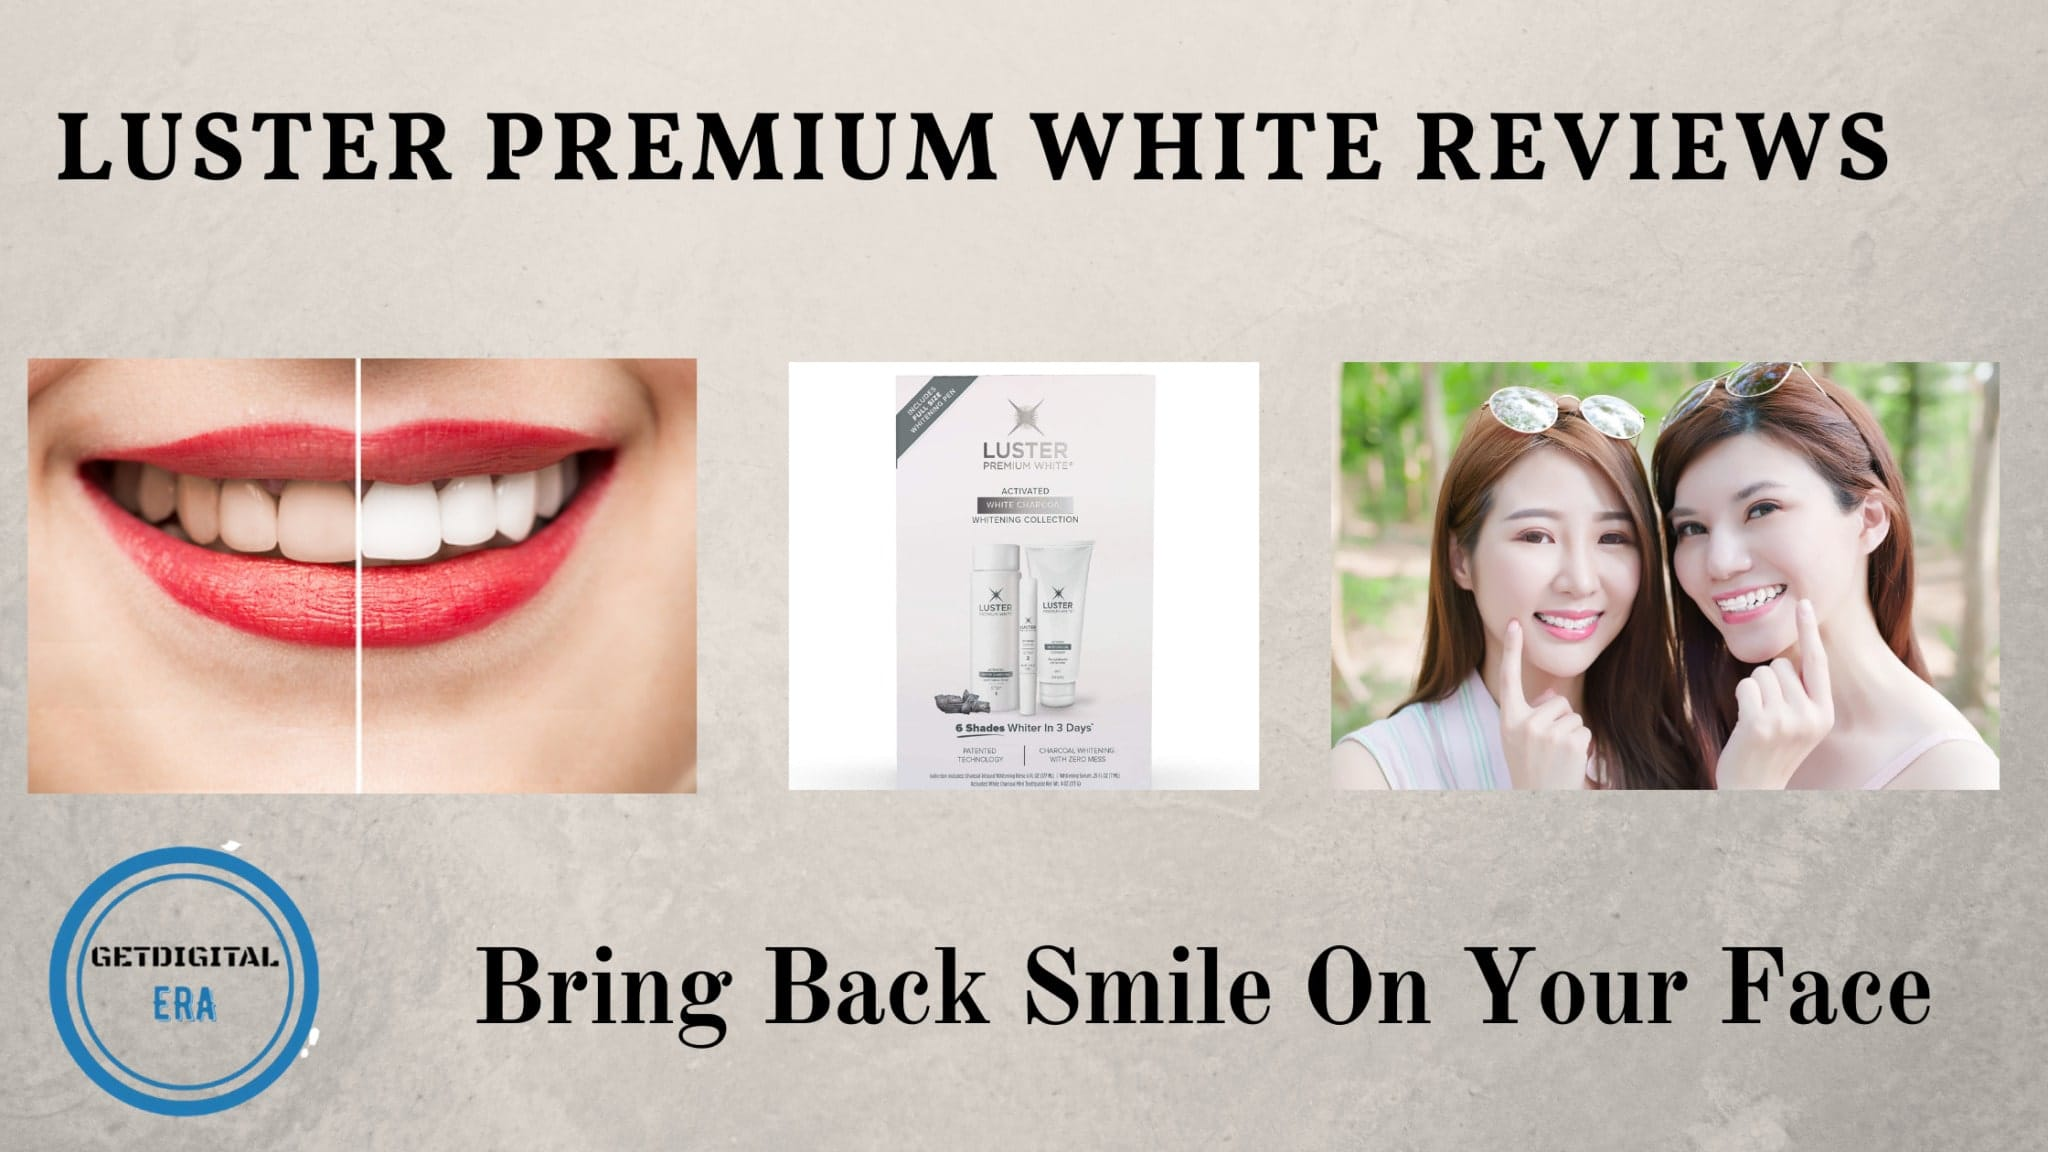 Luster Premium White Reviews